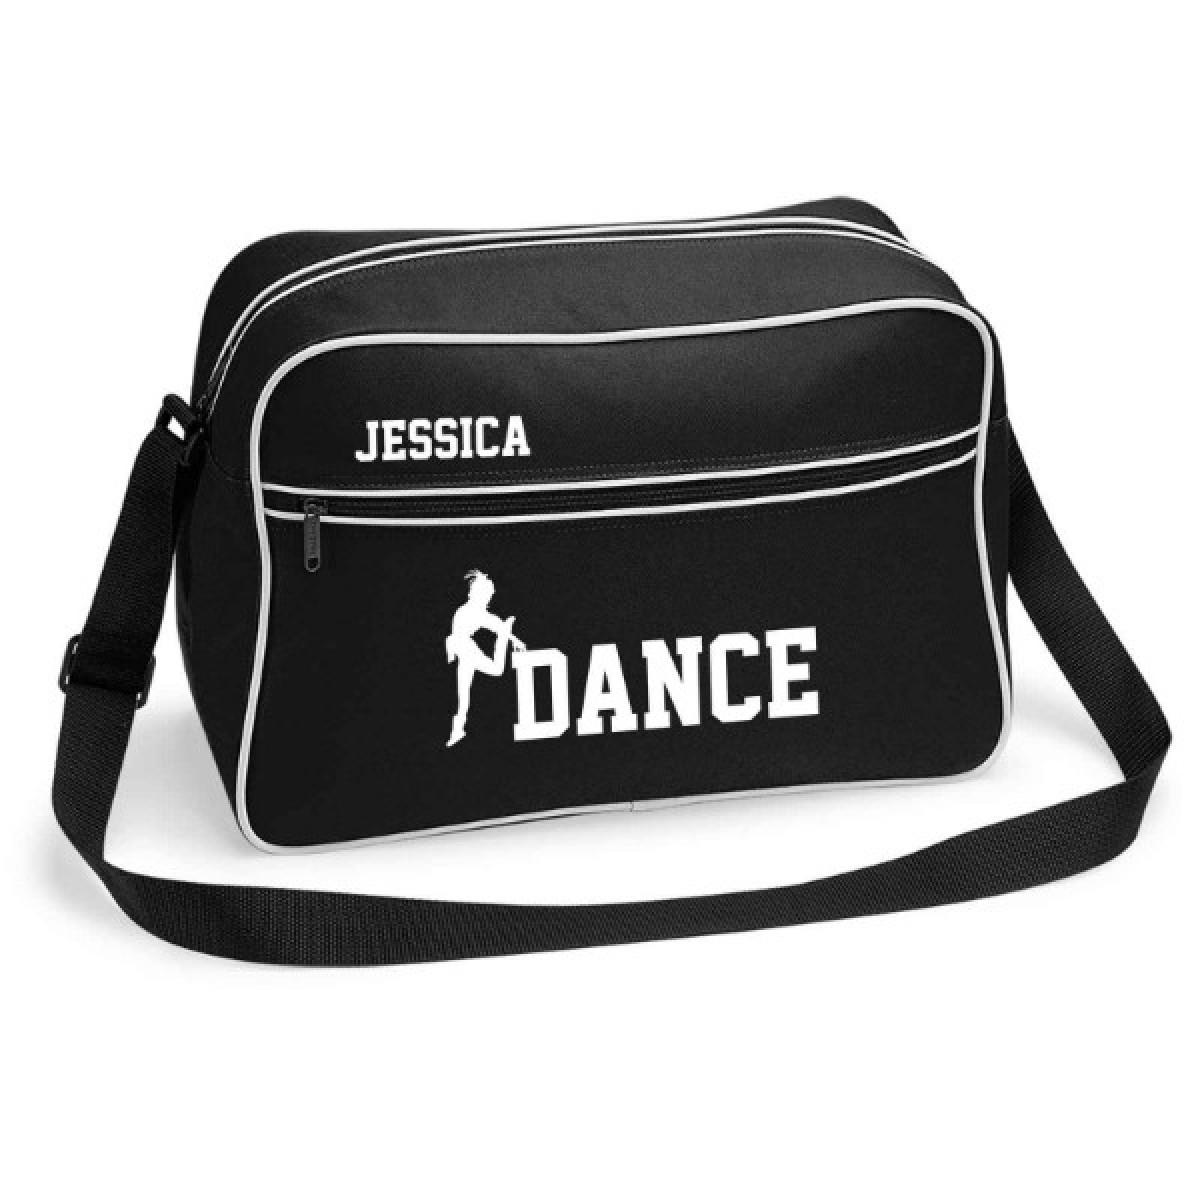 fcbcf44d8b55 Dance Retro Sports Bag. Black With White Or White With Black Colours.